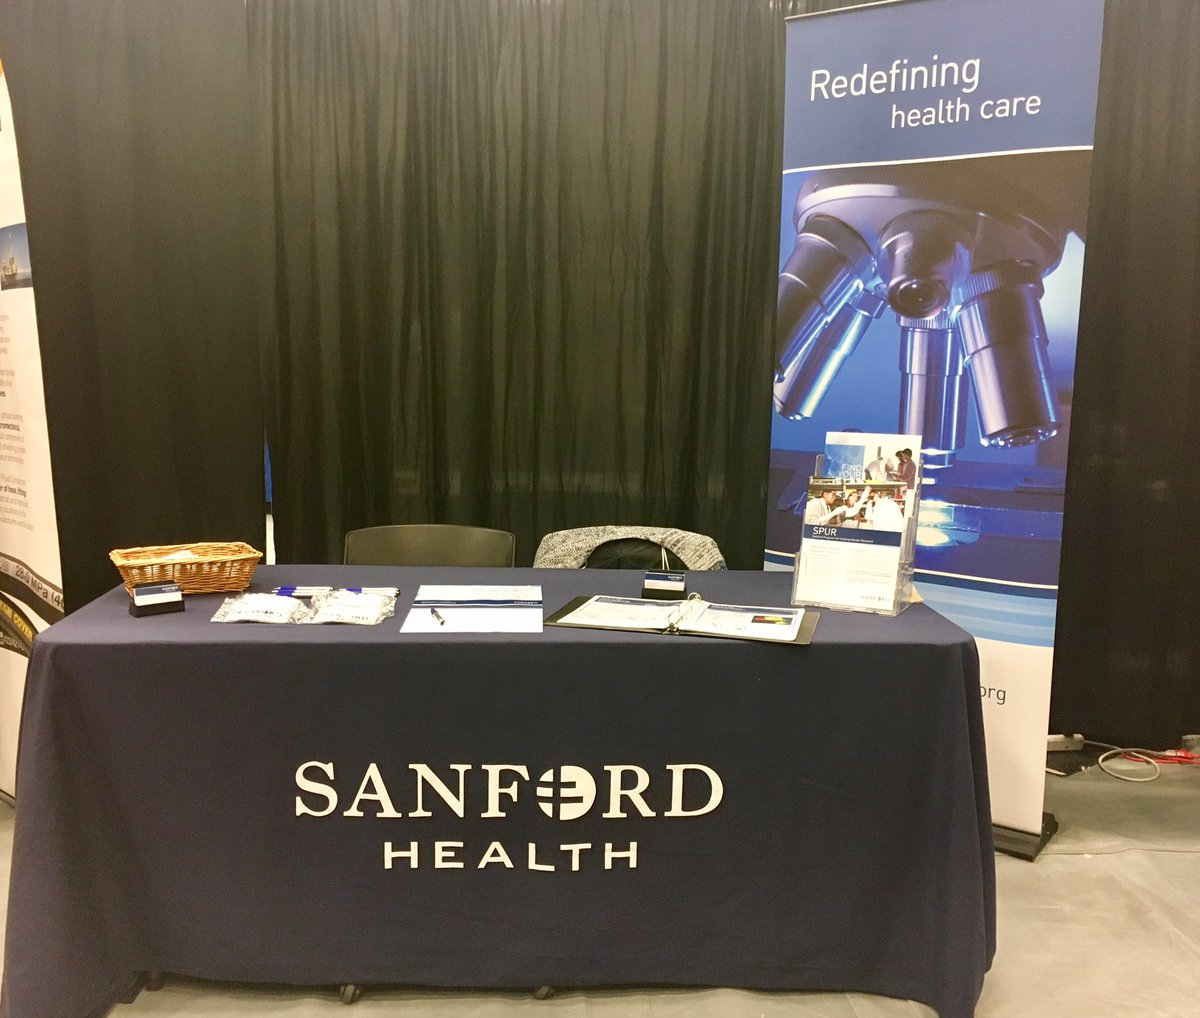 Come visit us @sdsmt today from 11:00-4:00! #SanfordHealth #hiring #internships #careers<br>http://pic.twitter.com/RpjTEGiUJb